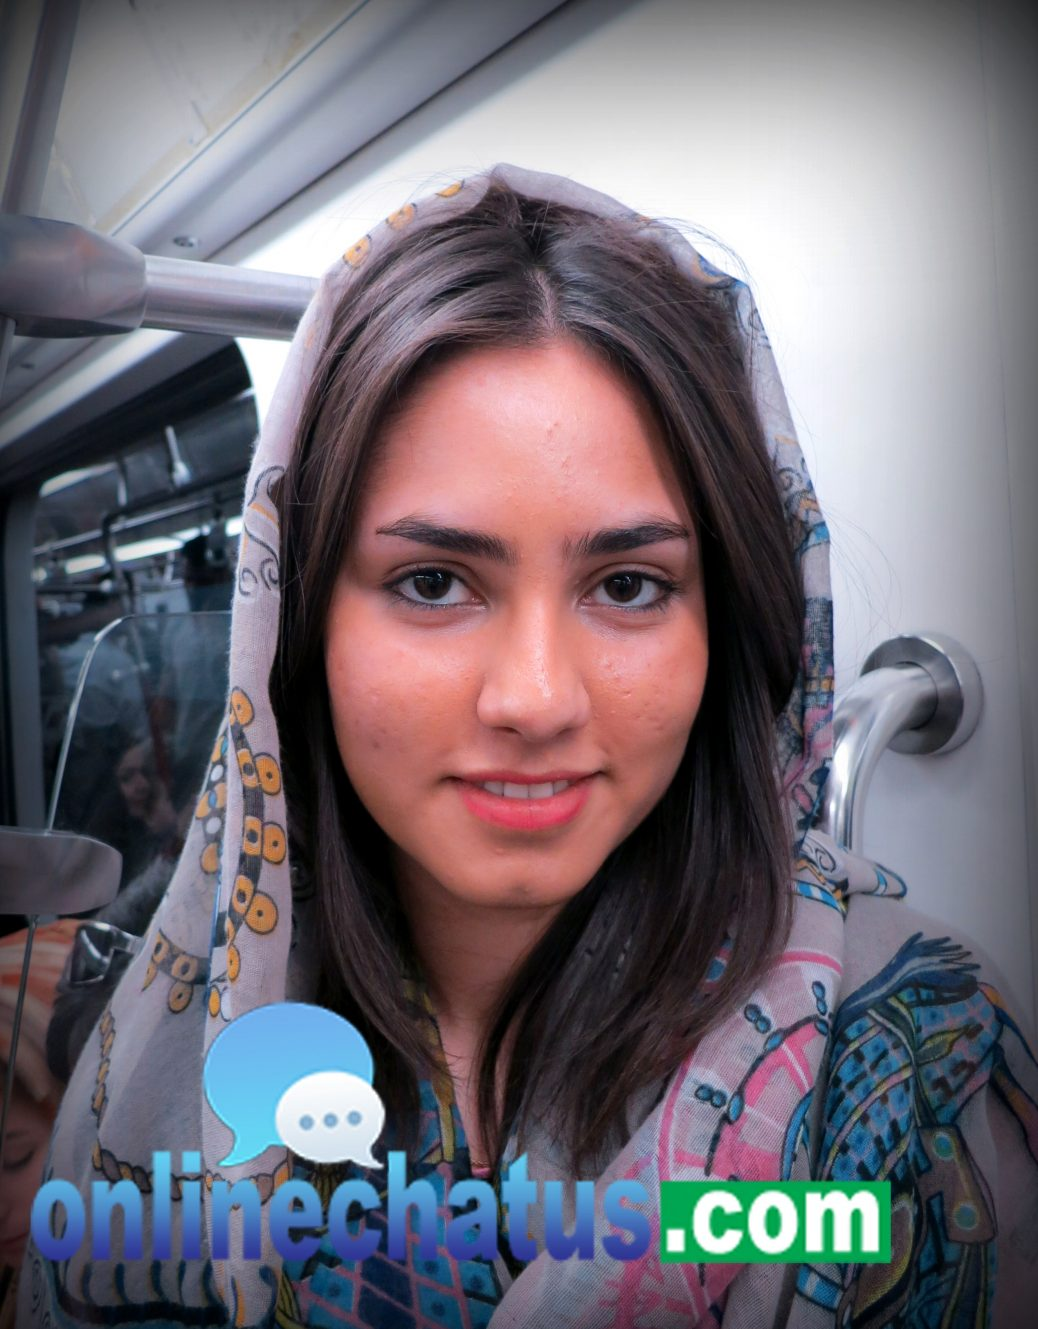 Chat online with Iran friends without registration